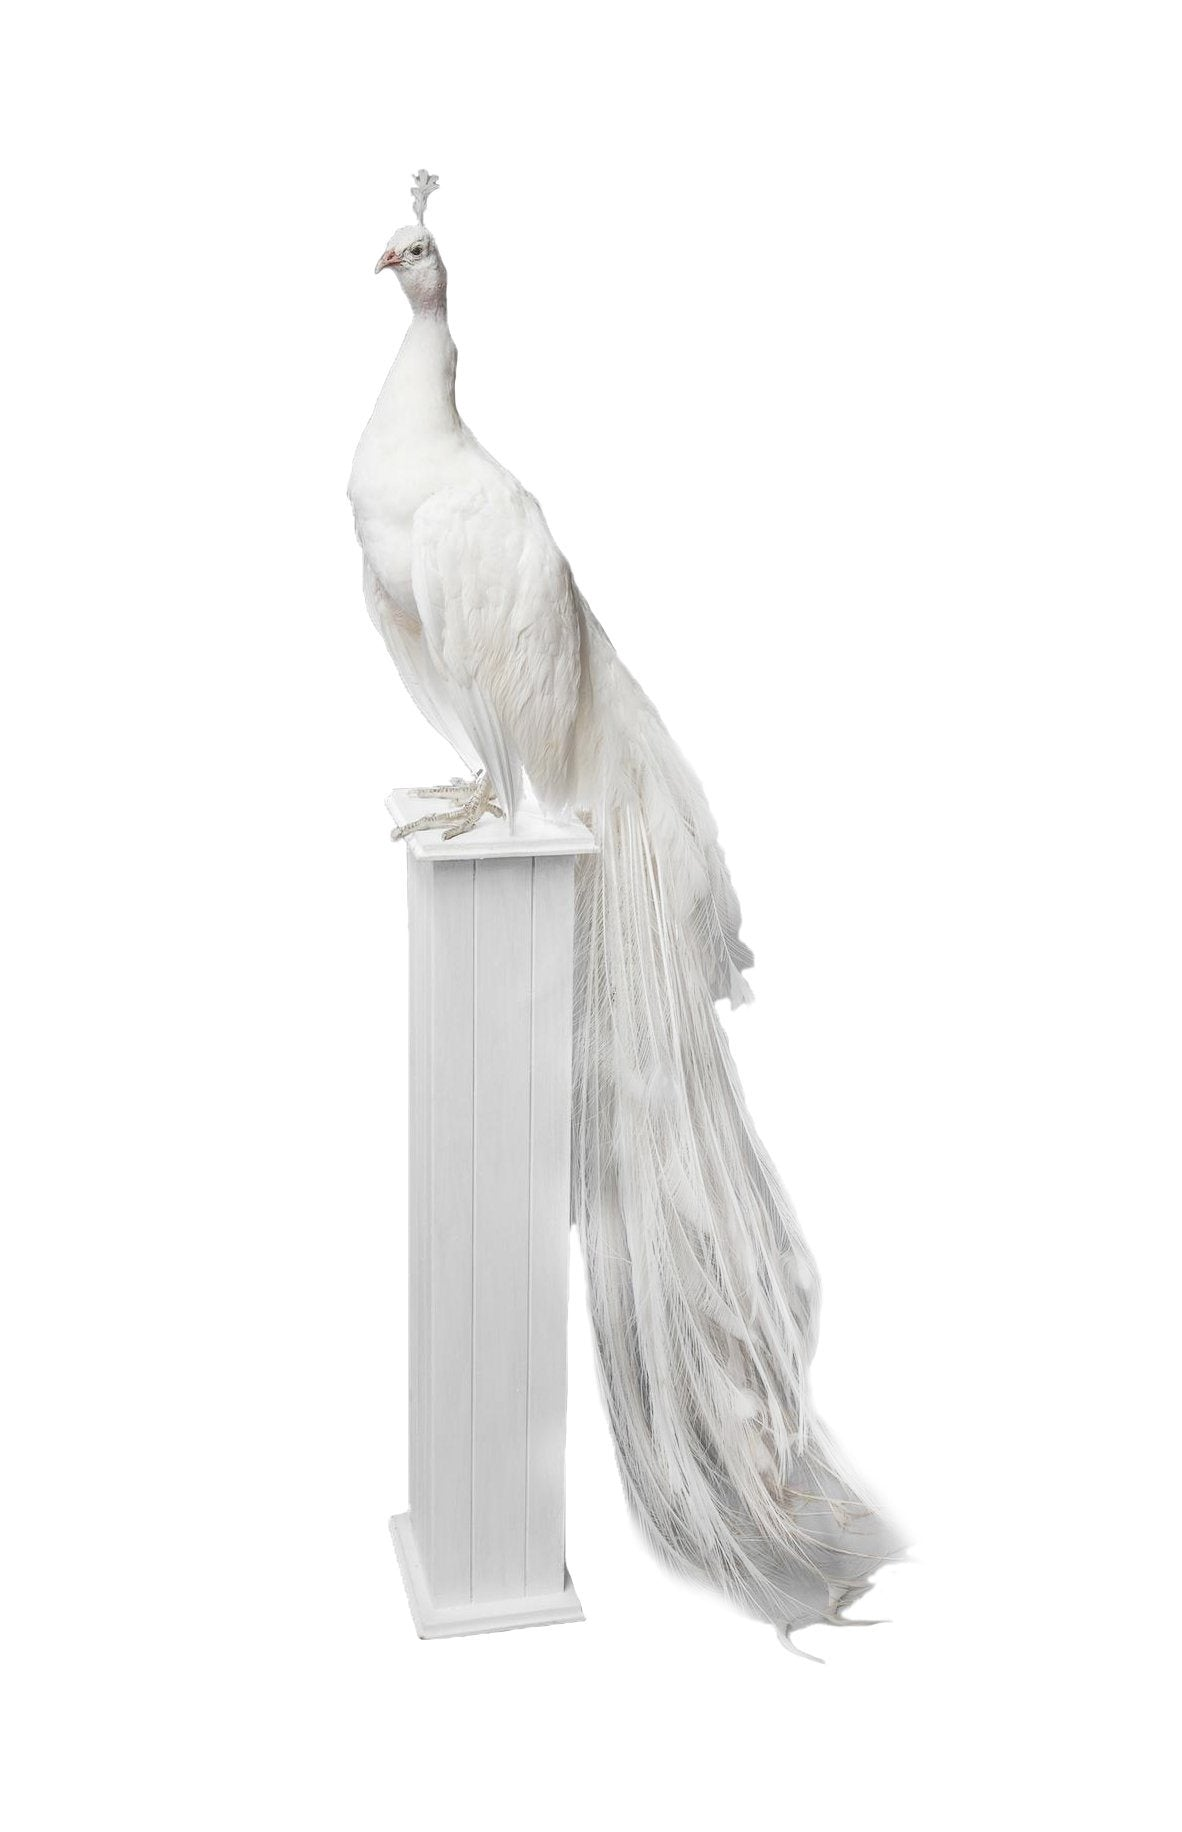 21st Century Taxidermy White Peacock mounted upon pedestal - A Modern Grand Tour